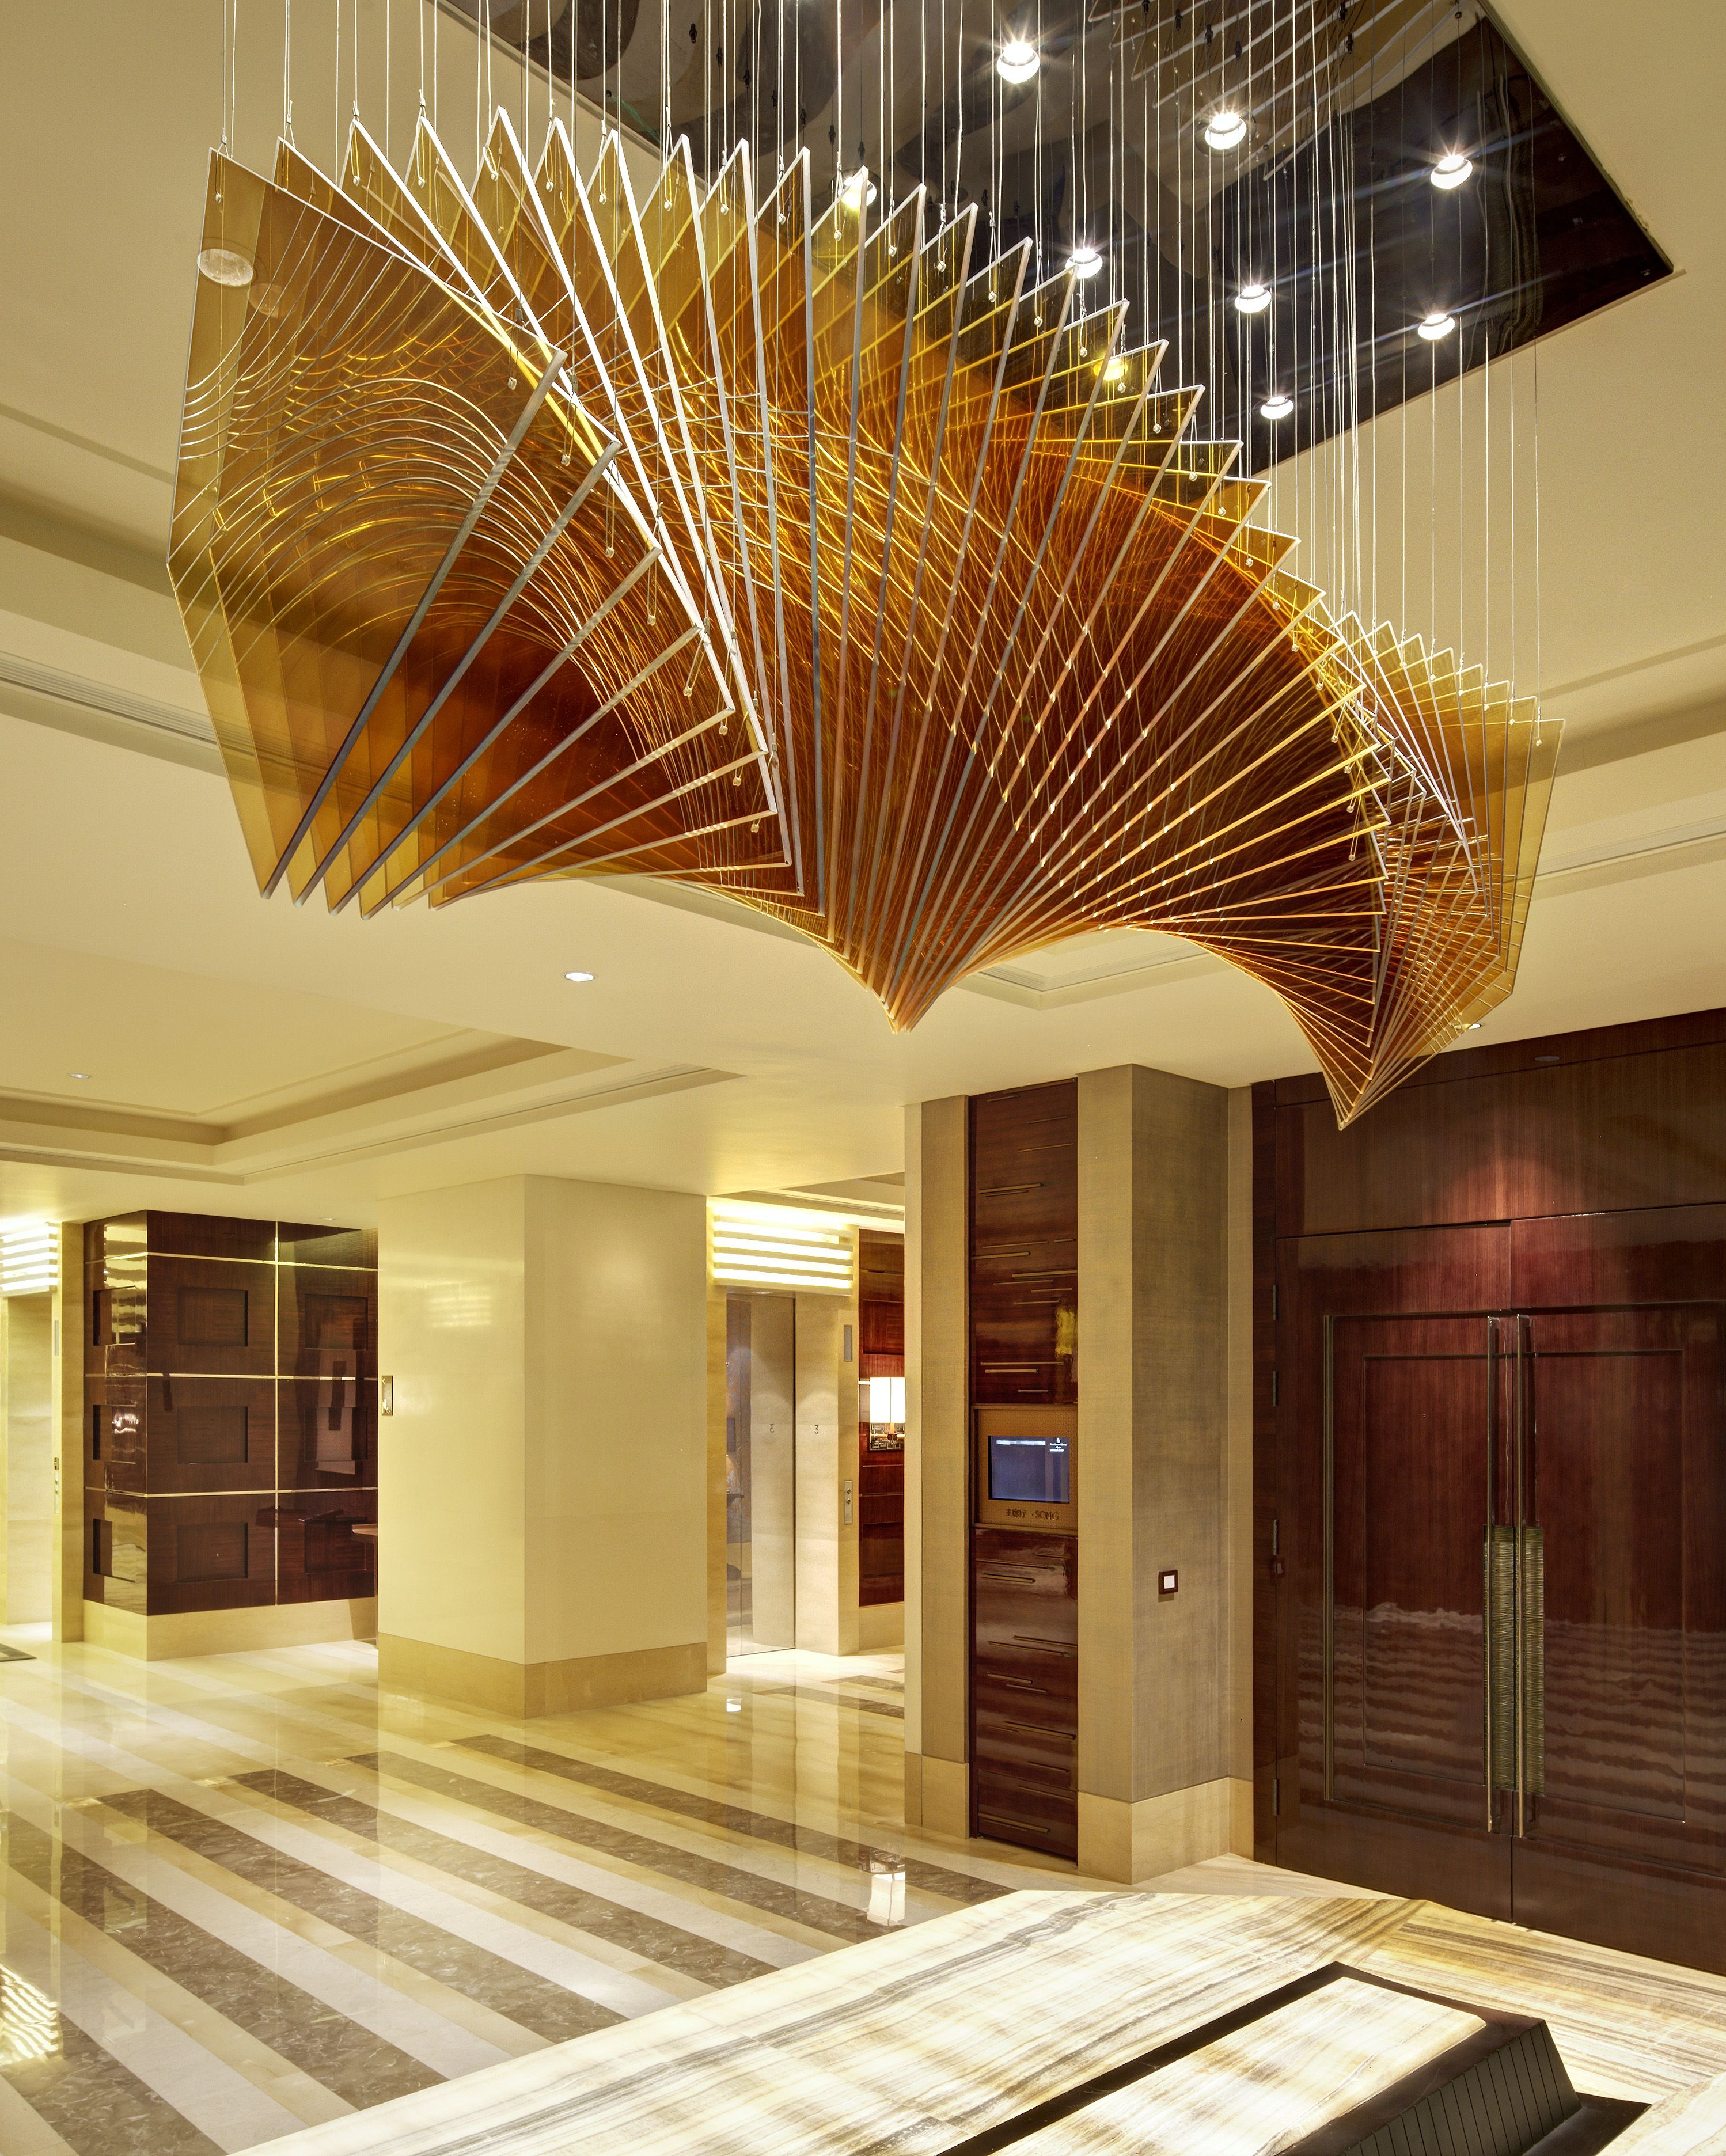 Four Ways To Better Interior Design Installations: Four Seasons Hotel By Lasvit